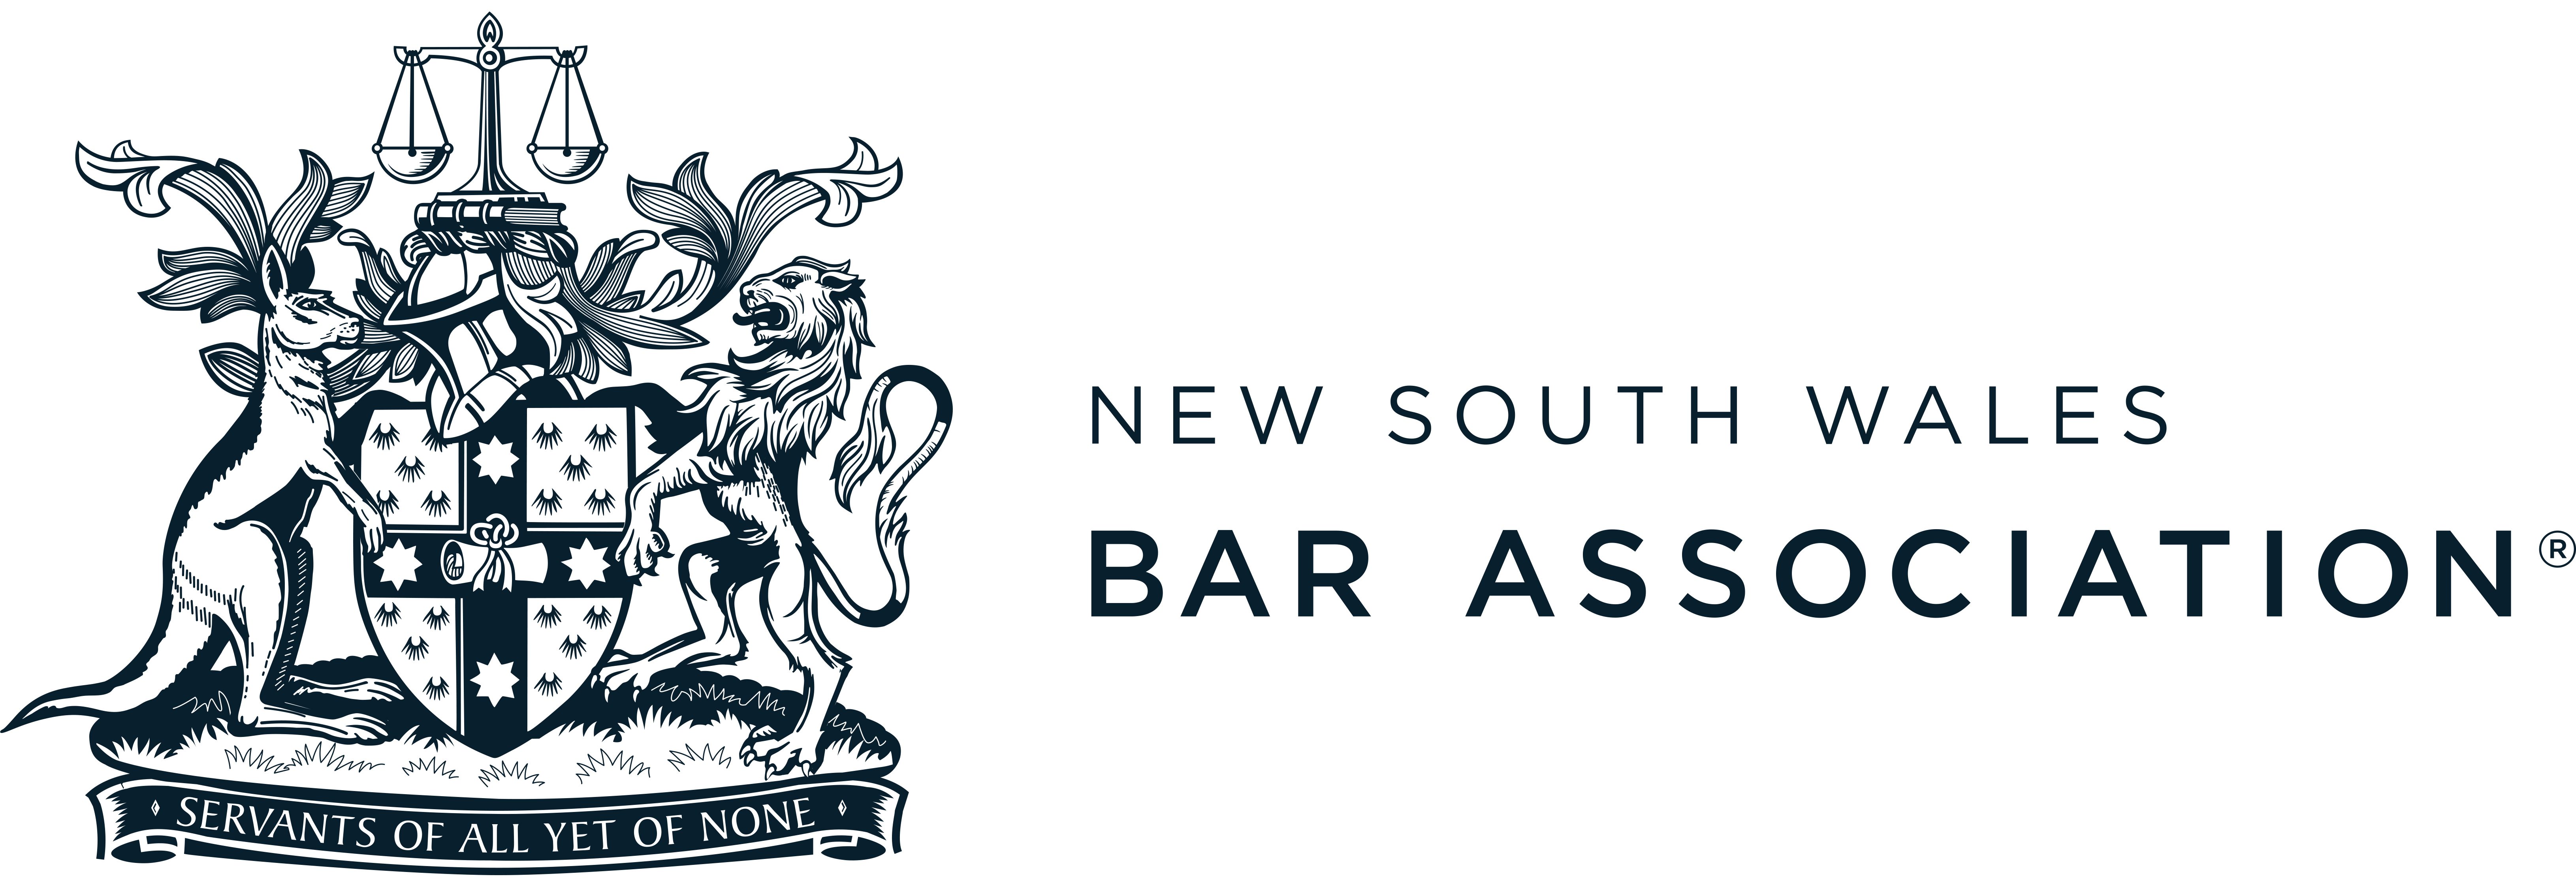 NSW Bar Association logo